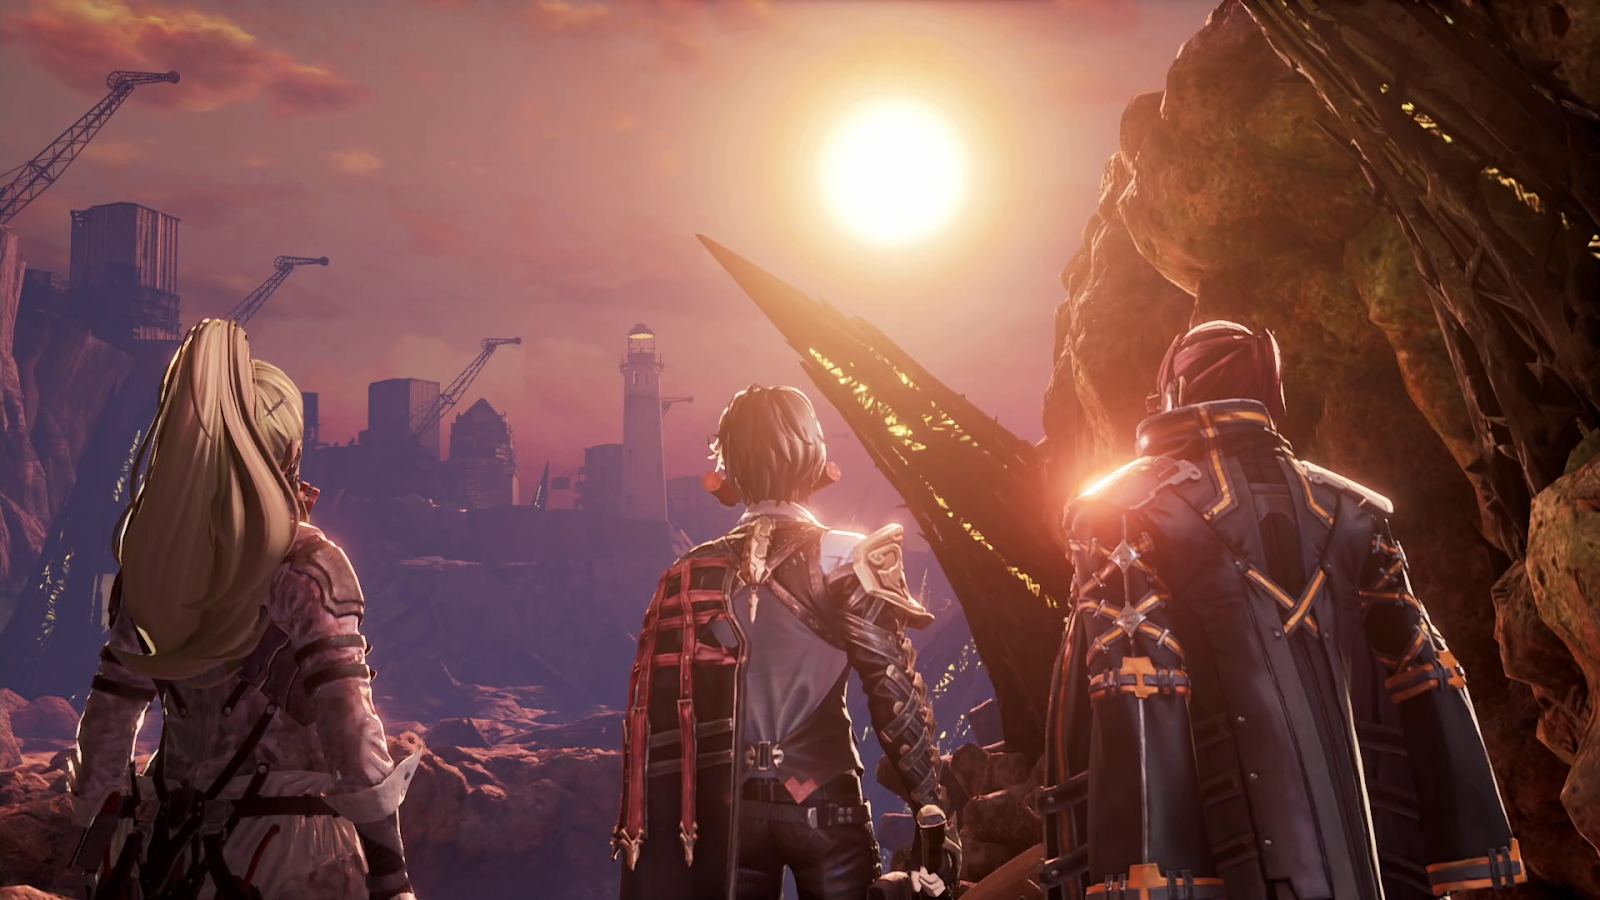 Code Vein Is The Chillest Dark Souls Clone